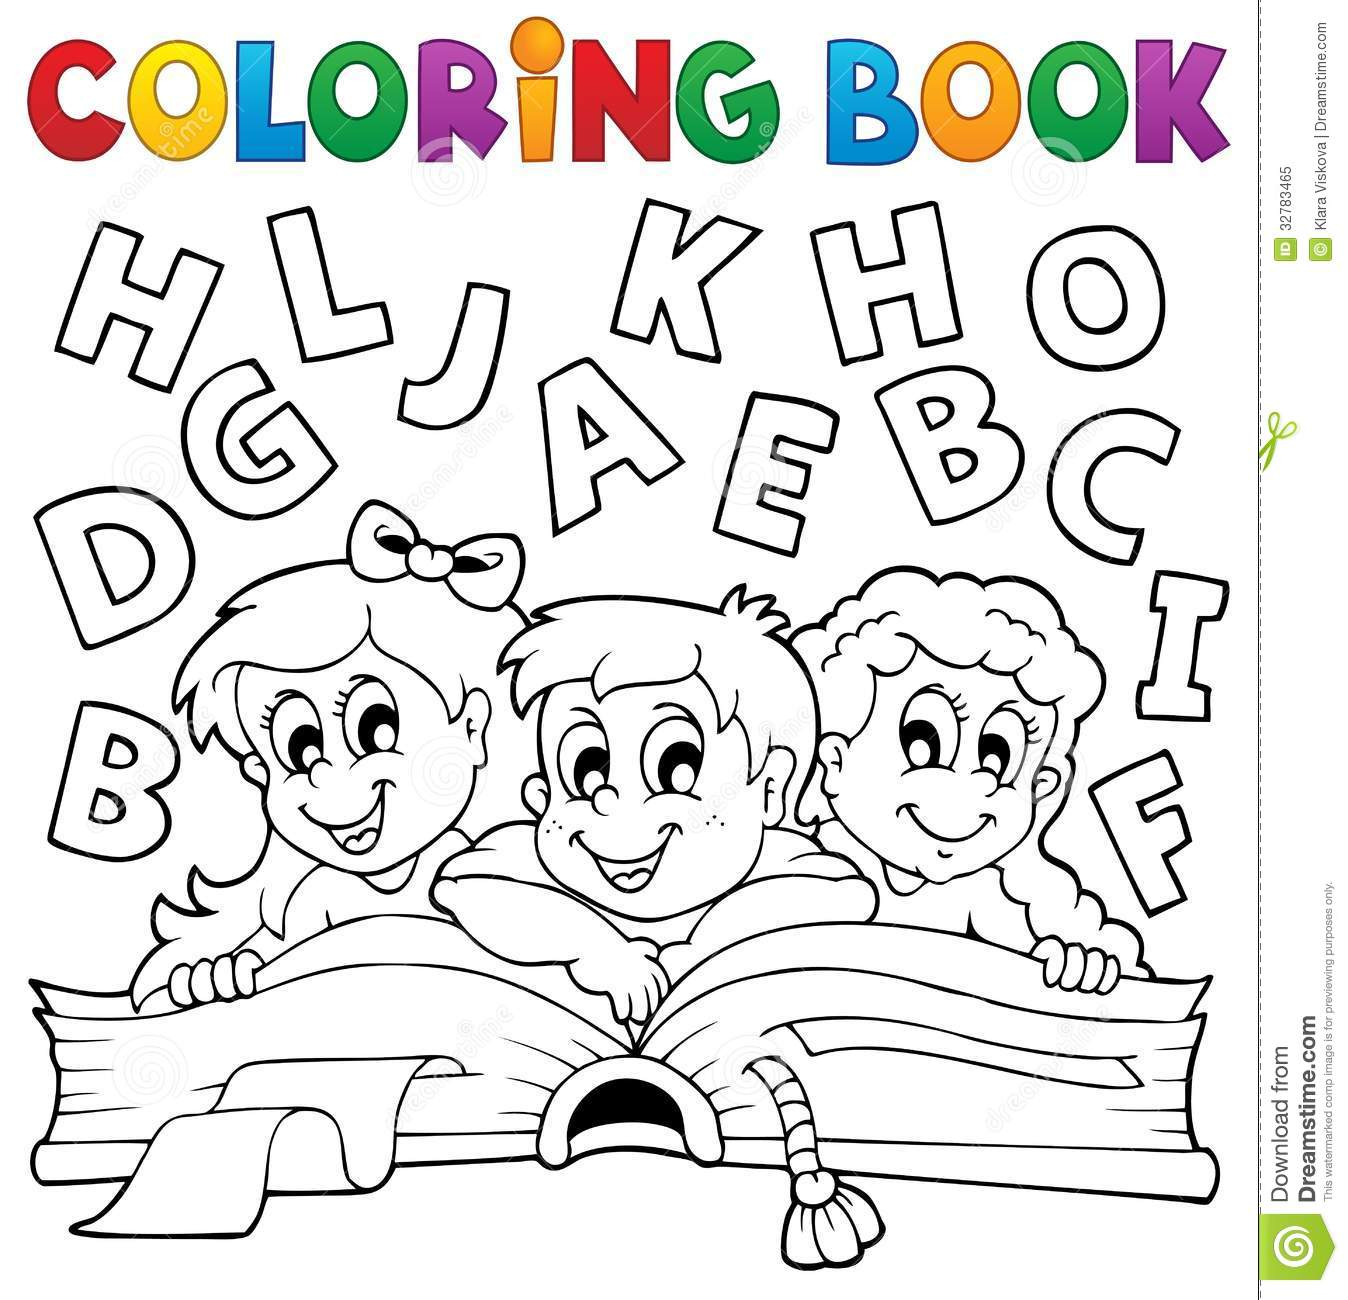 Coloring Book For Kid: Coloring pages free disney for kids image.